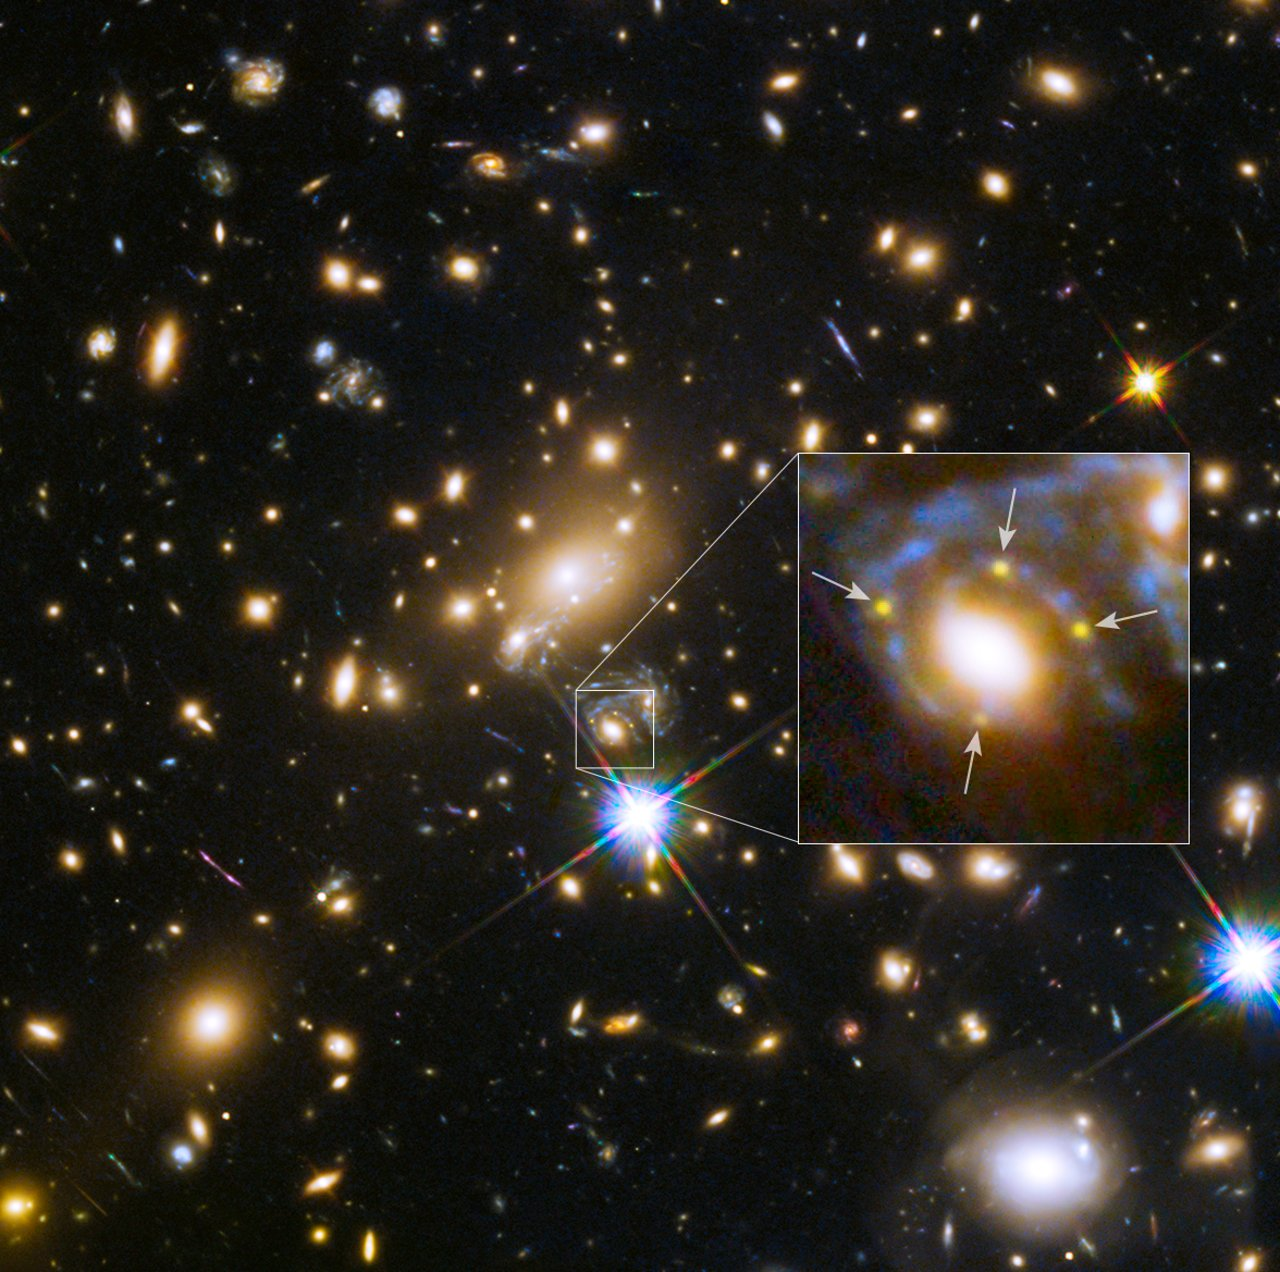 This image shows the huge galaxy cluster MACS J1149+2223, whose light took over 5 billion years to reach us.